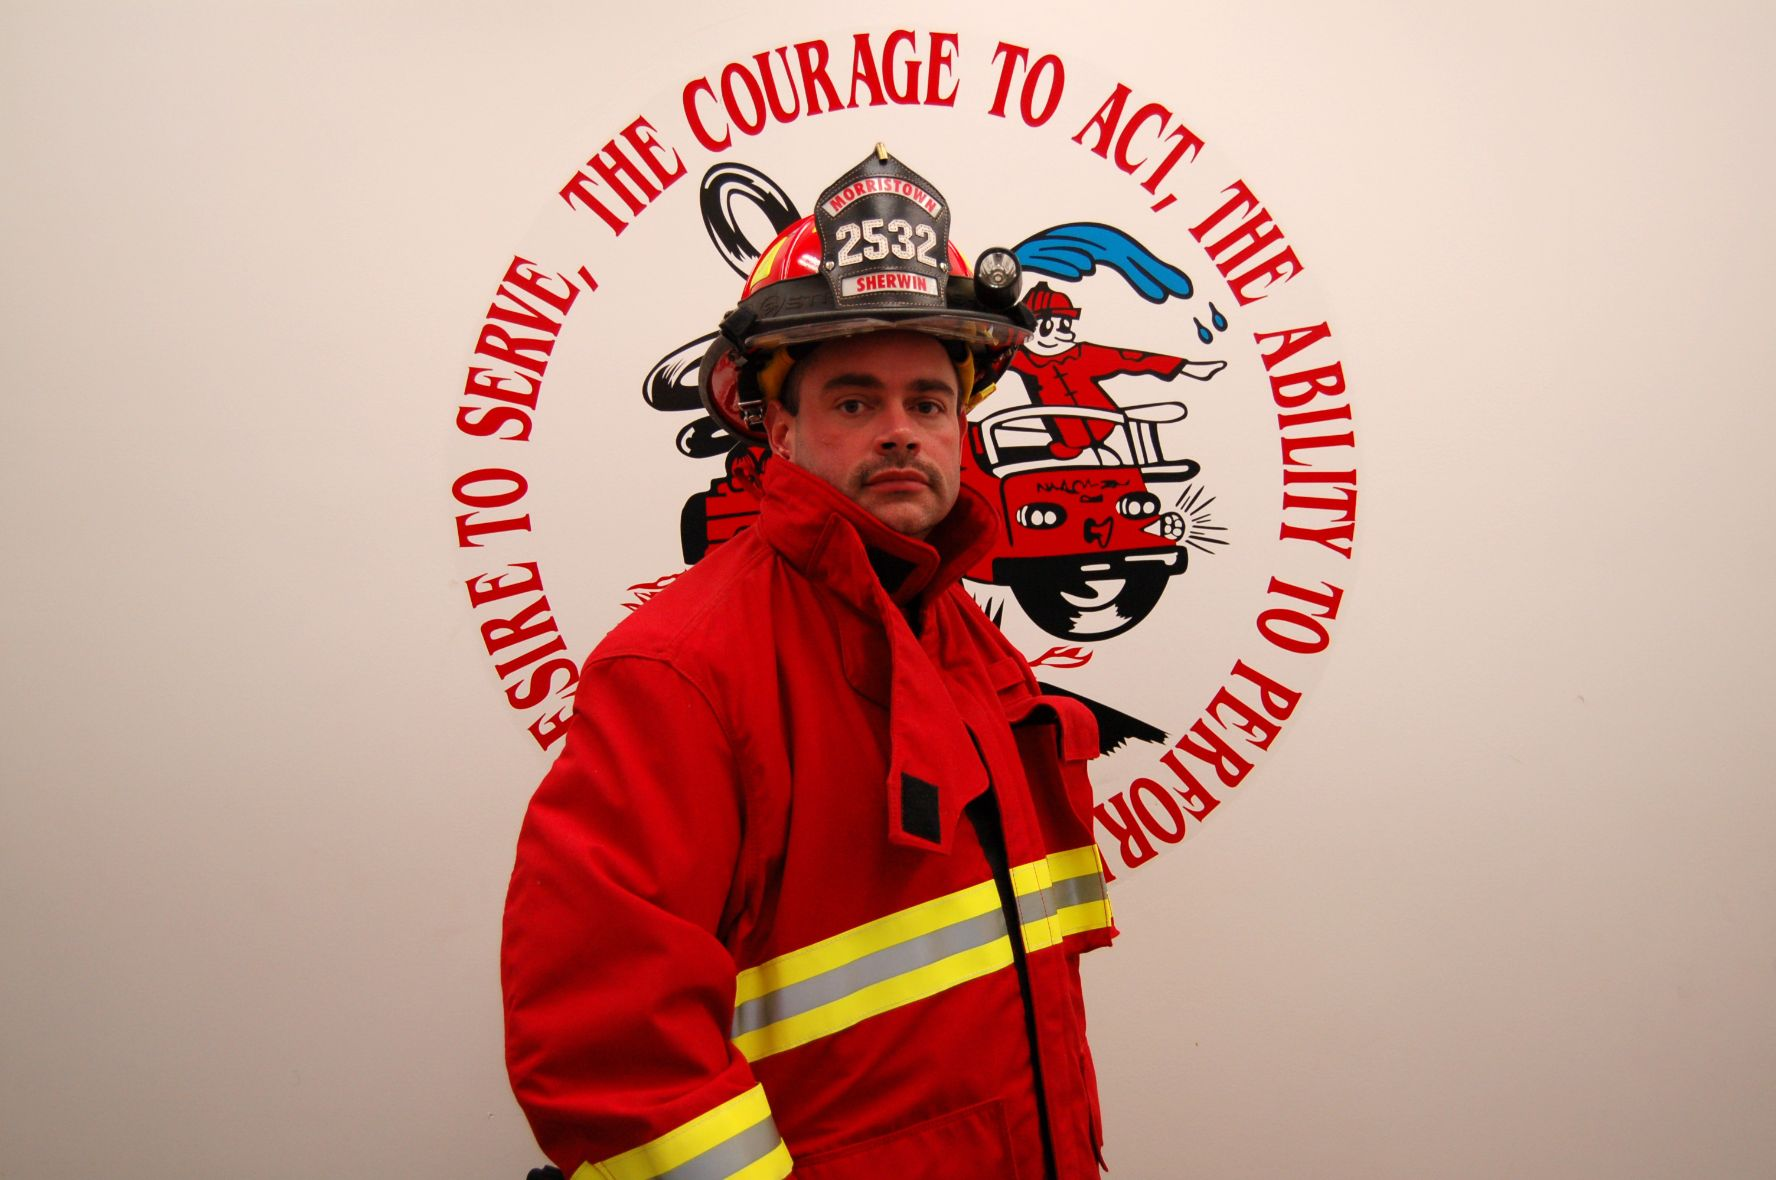 Fire Fighter Christopher Sherwin